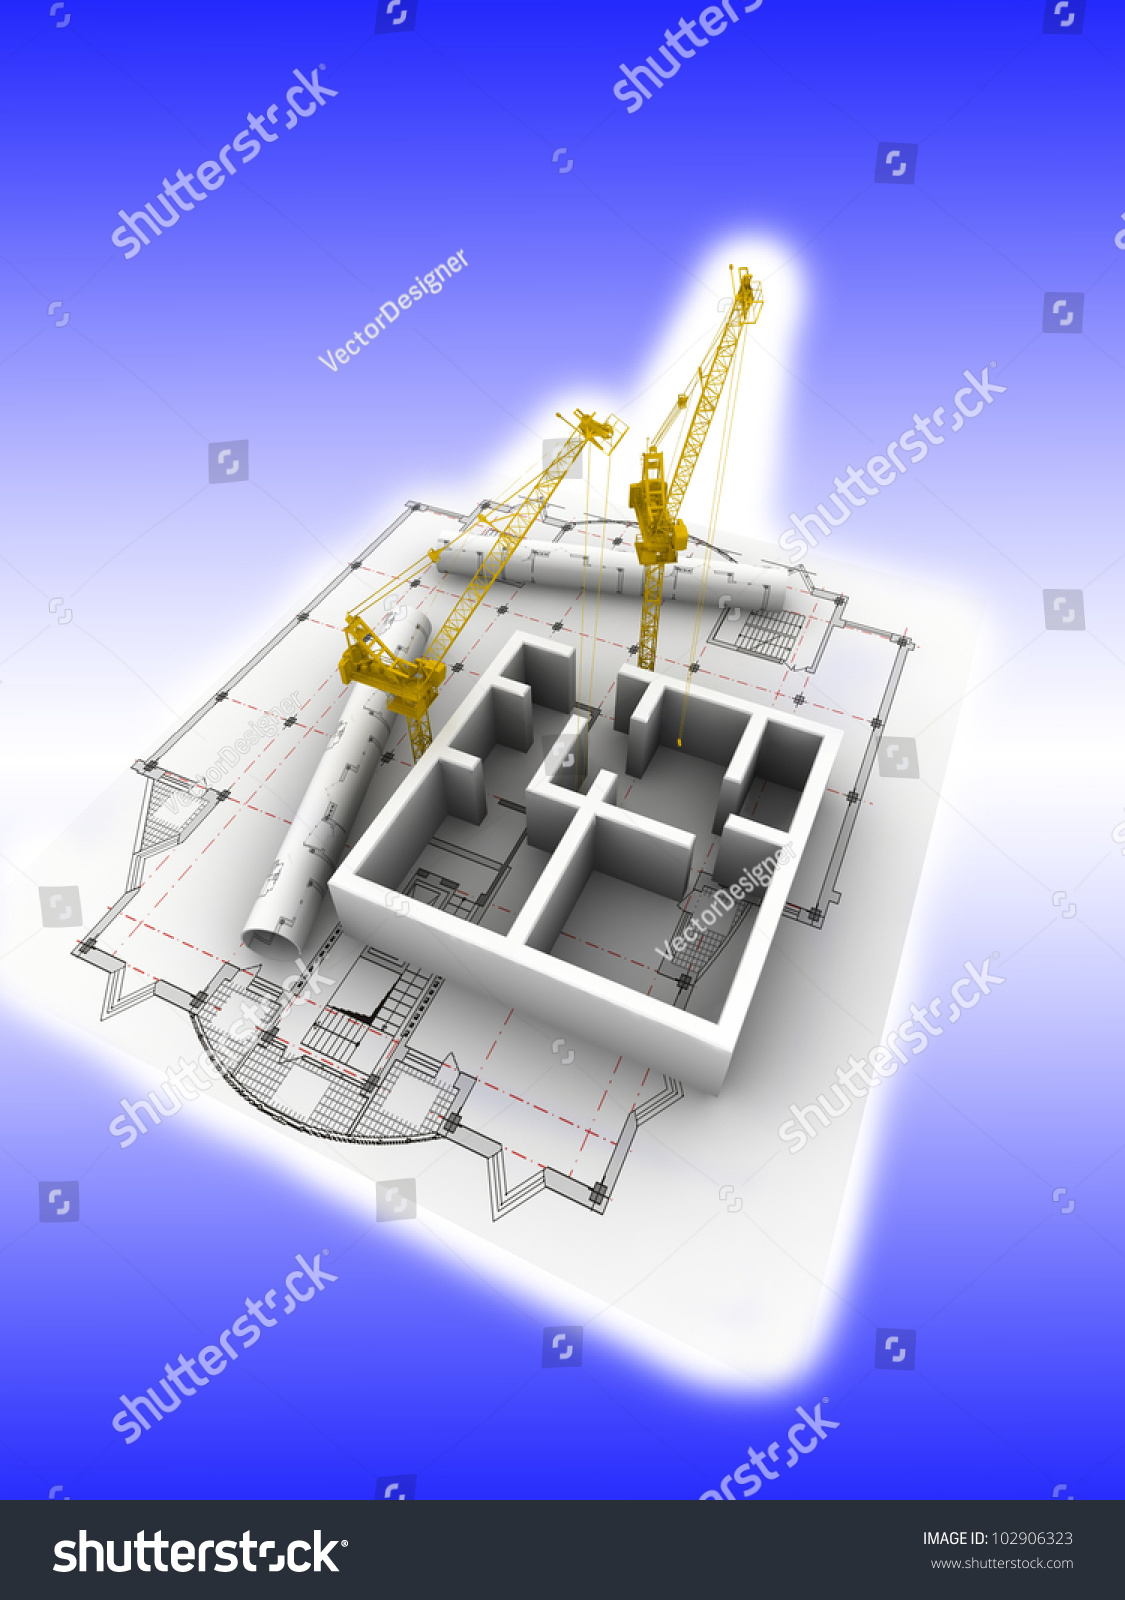 3d plan drawing stock photo 102906323 shutterstock for 3d plan drawing